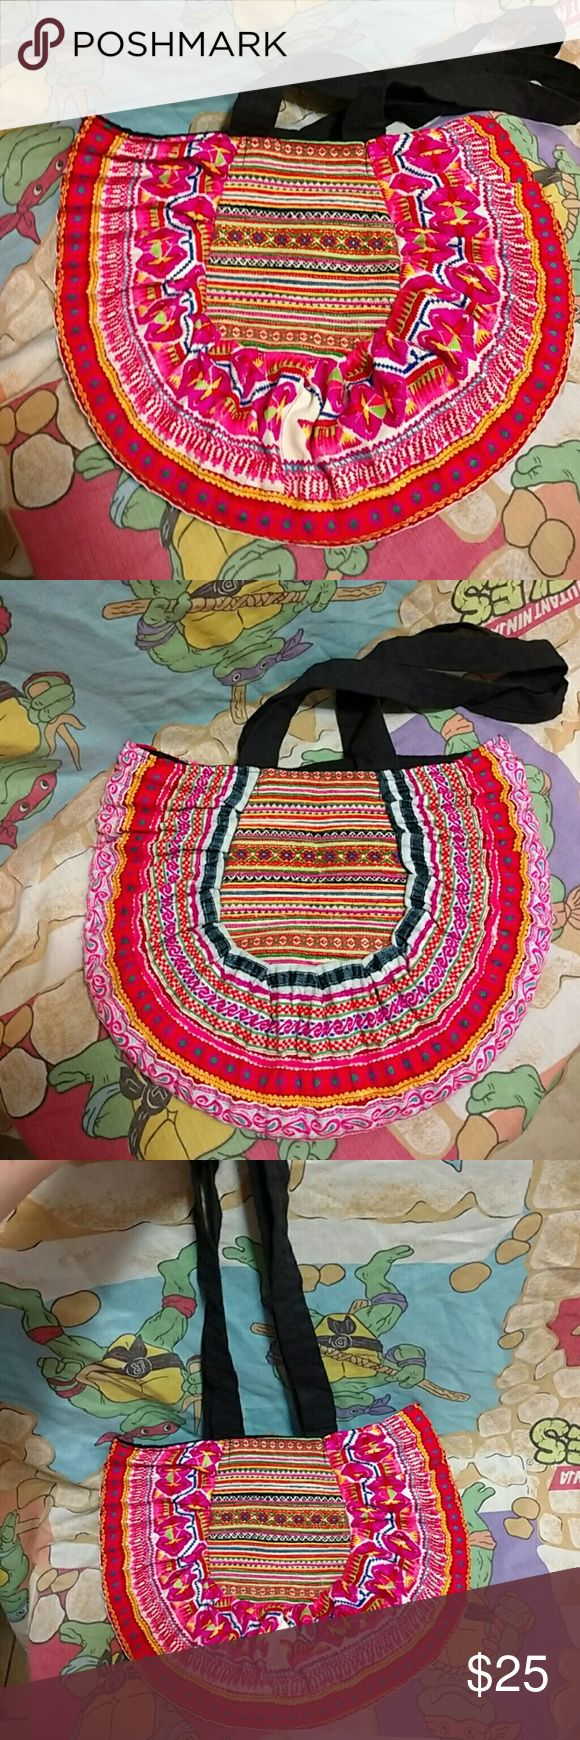 Tribal Aztec Purse 13.5 x 10.5. Strap length is 14. Beautiful embroidered purse. You can feel all the different textures. Each side is slightly different. Roomy for all your essentials. There are a few loose threads on each side, please see last pics. Doesn't effect the wear or design. No tags. Bags Shoulder Bags